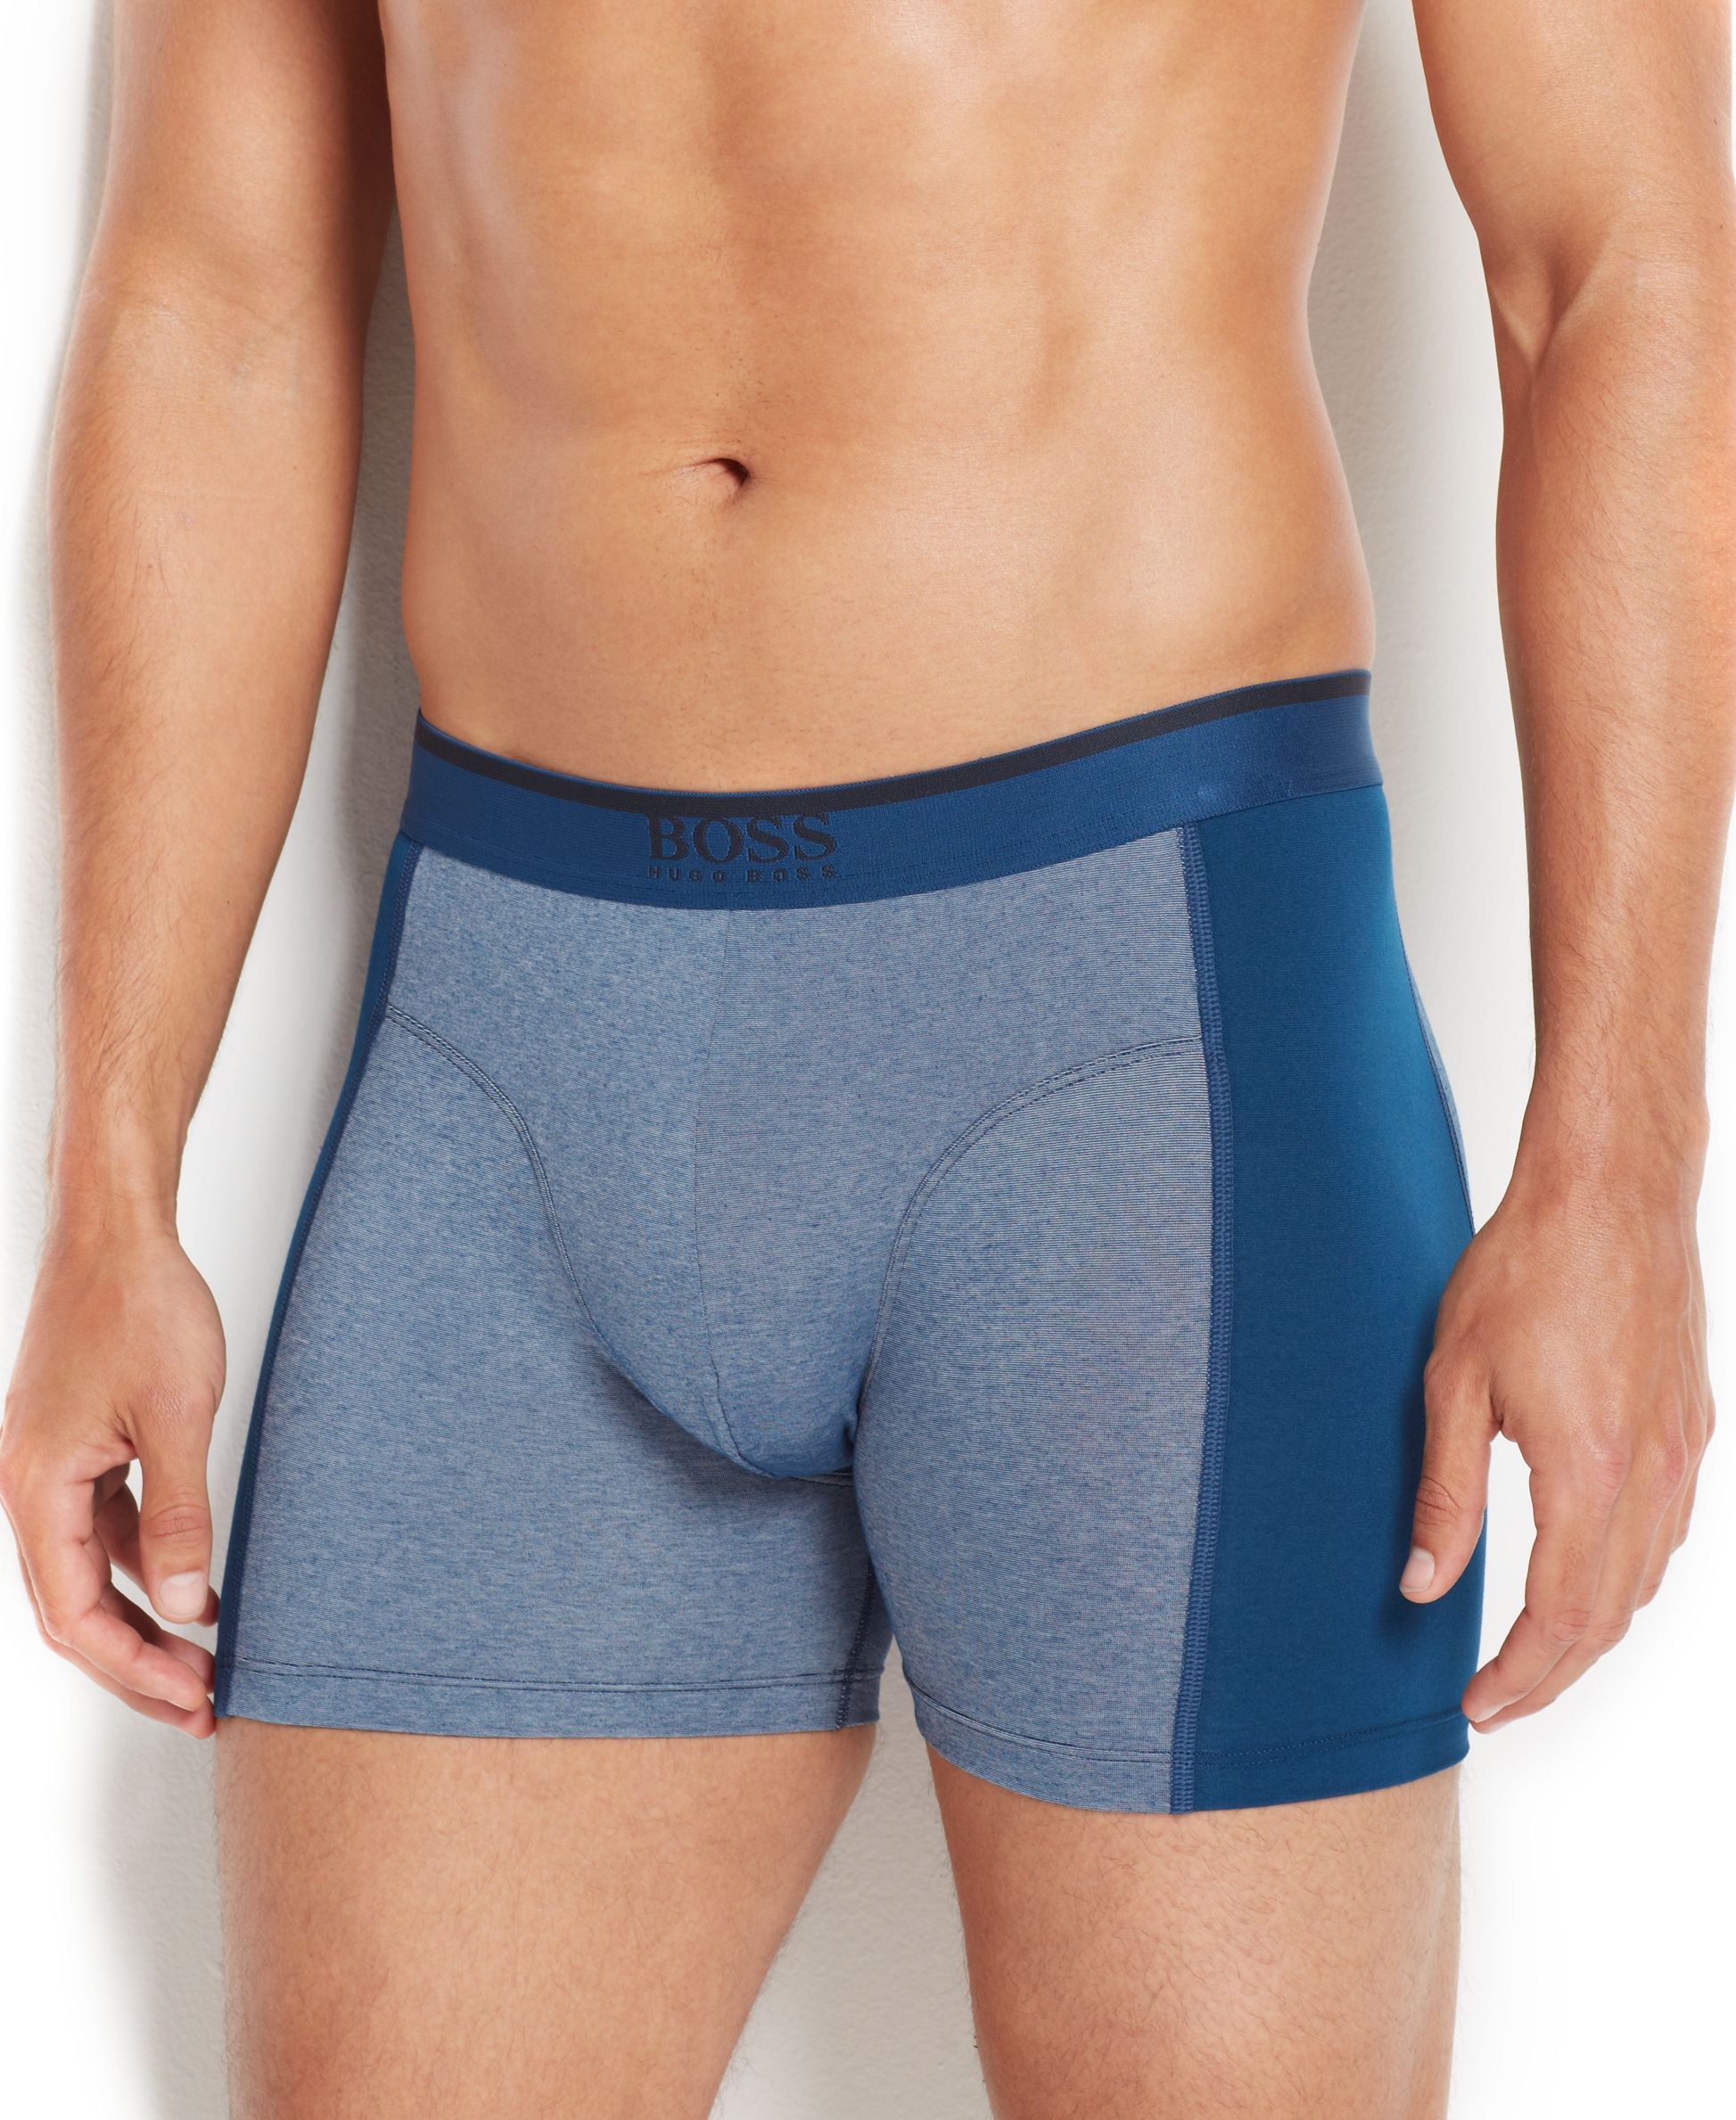 b513020eb0bf Hugo Boss Men's Cool Cotton Cyclist Boxer Briefs | Products | Ropa ...